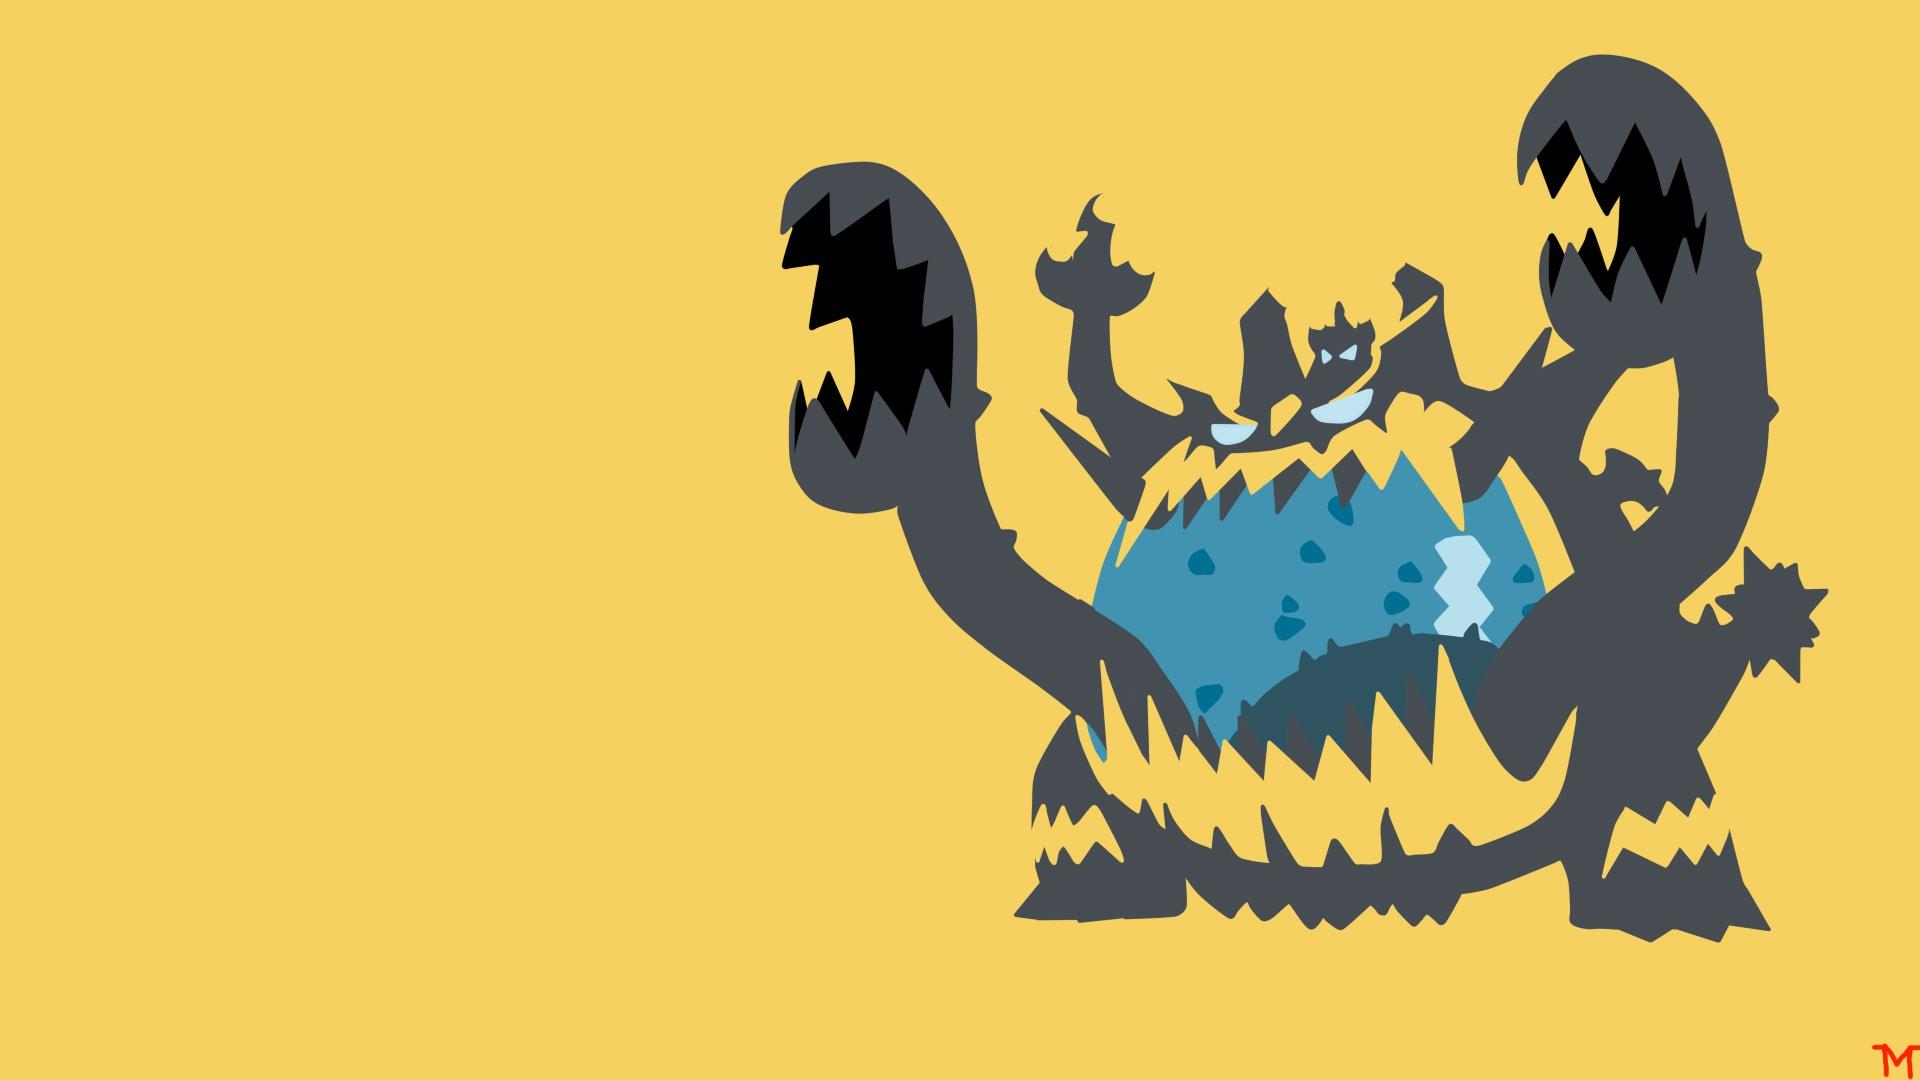 Guzzlord Pokemon Sun and Moon Minima... Wallpaper #19259